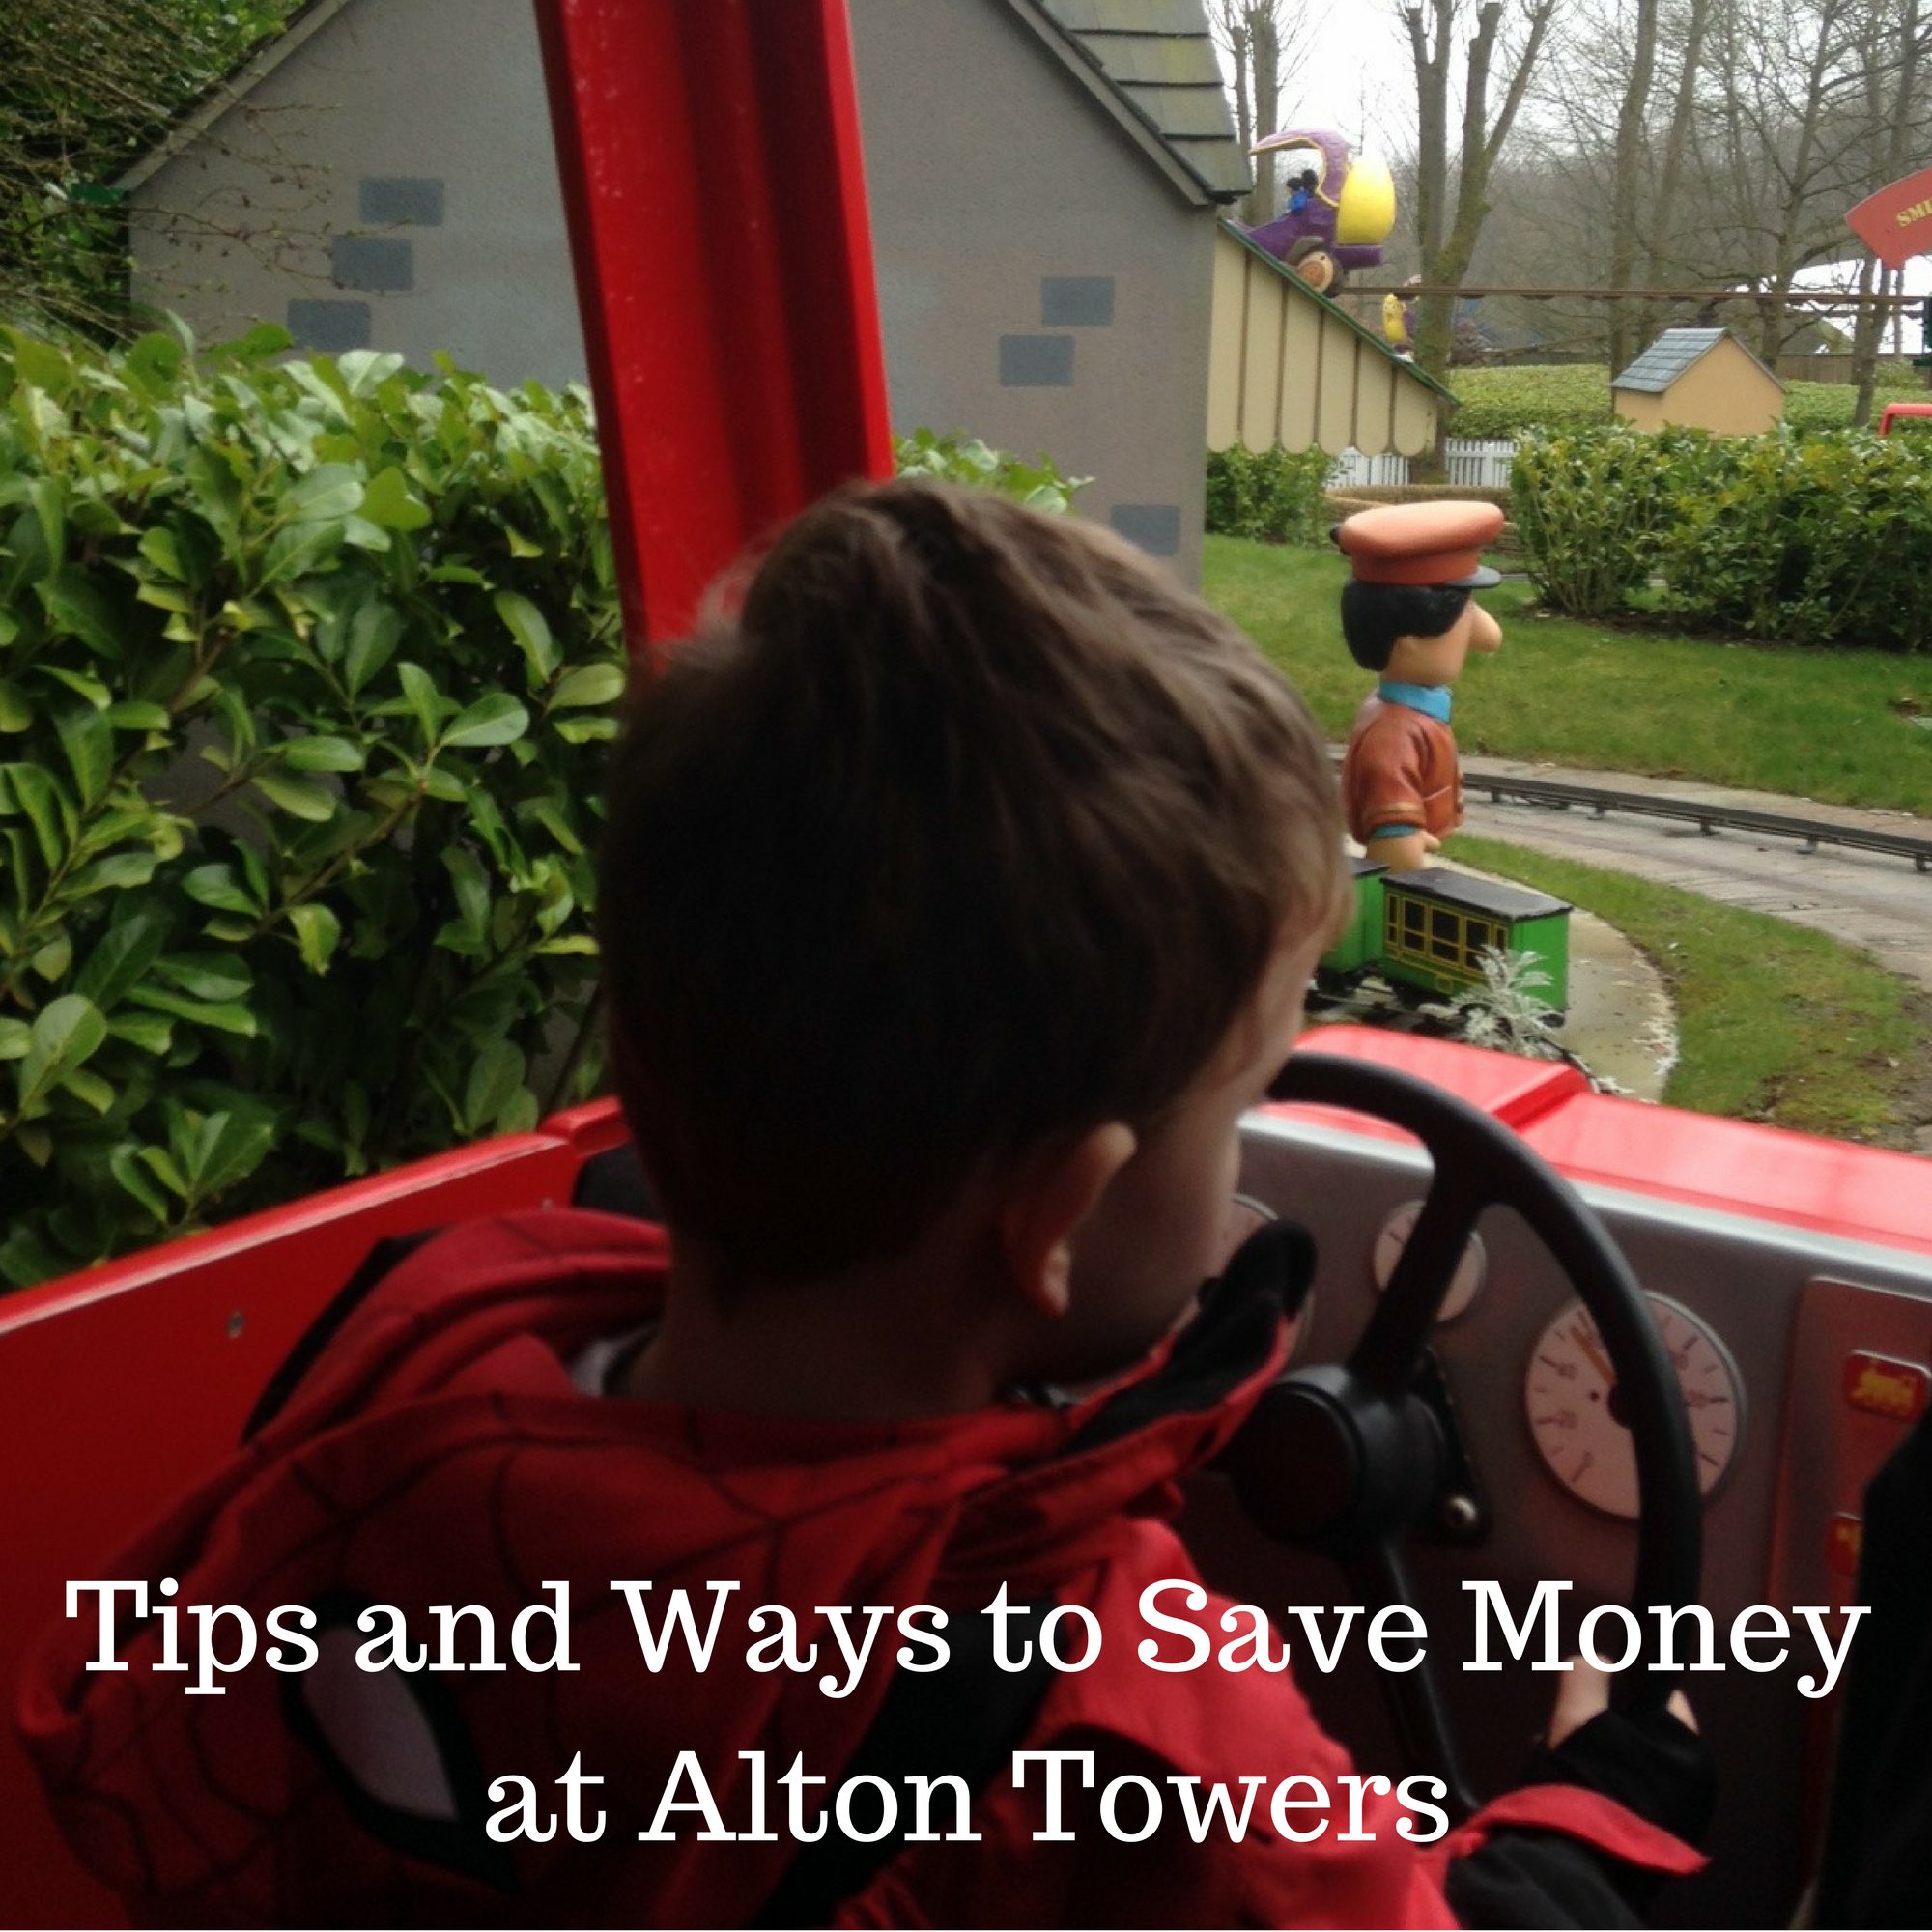 Tips and Ways to Save Money at Alton Towers